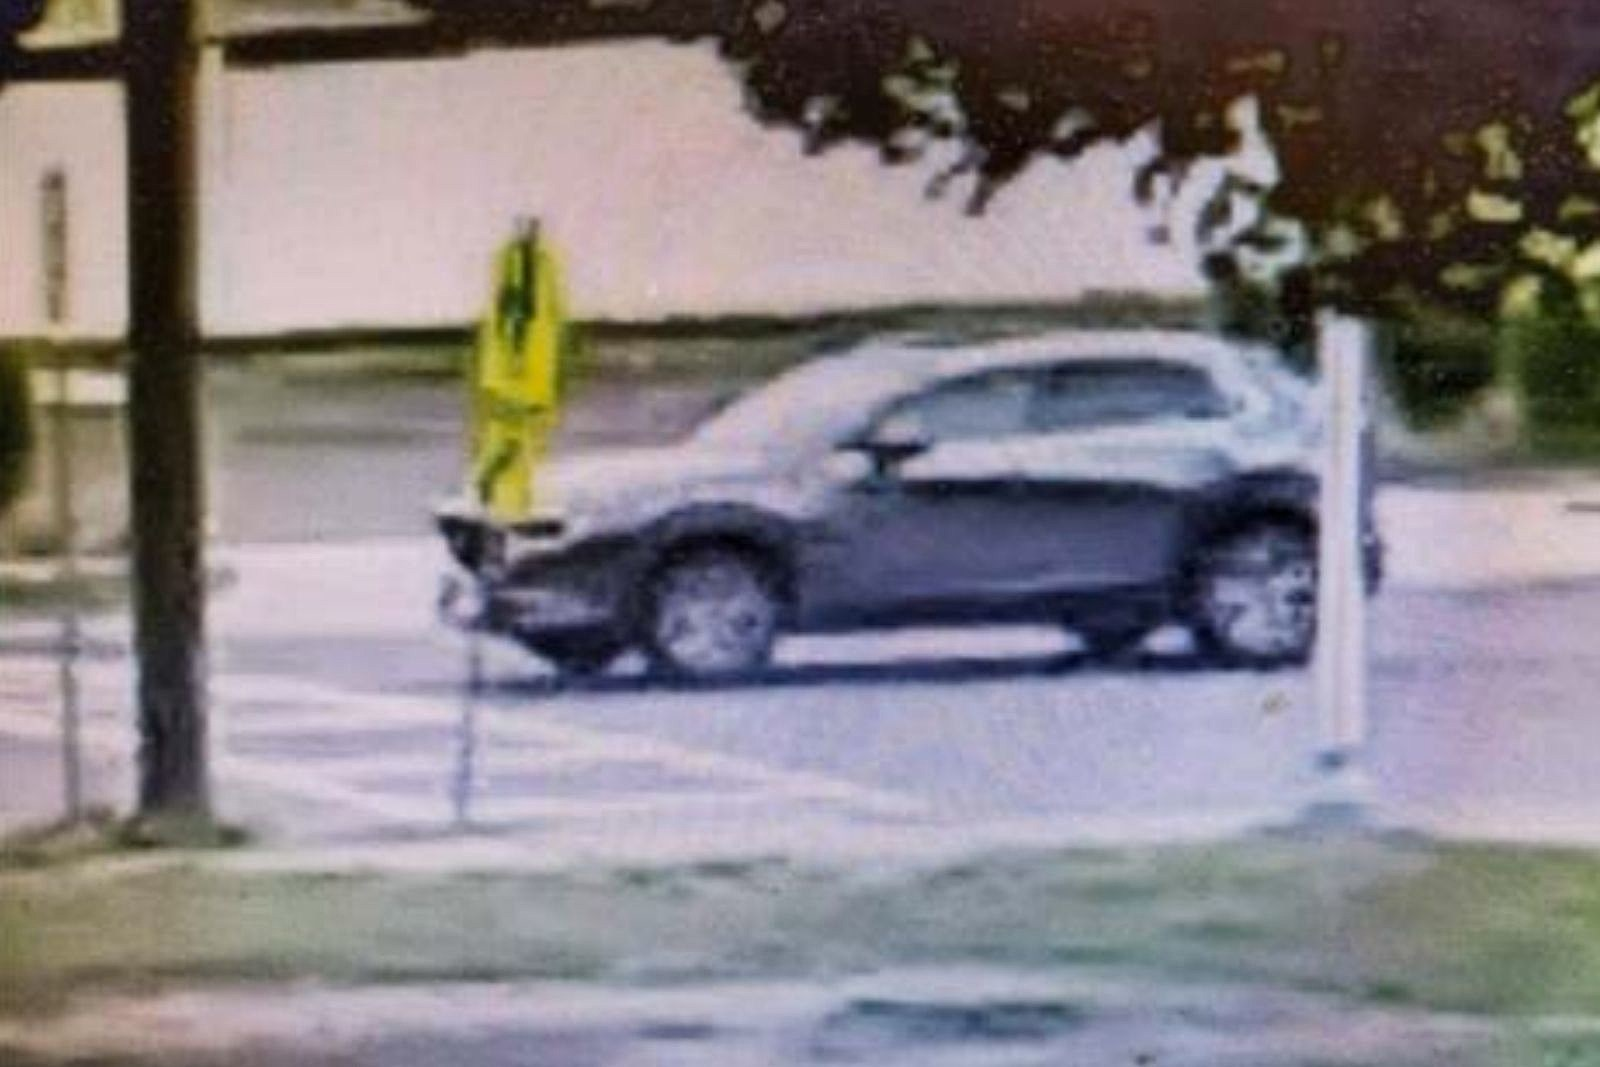 Have you seen this SUV? Edison, NJ police probe hit & run